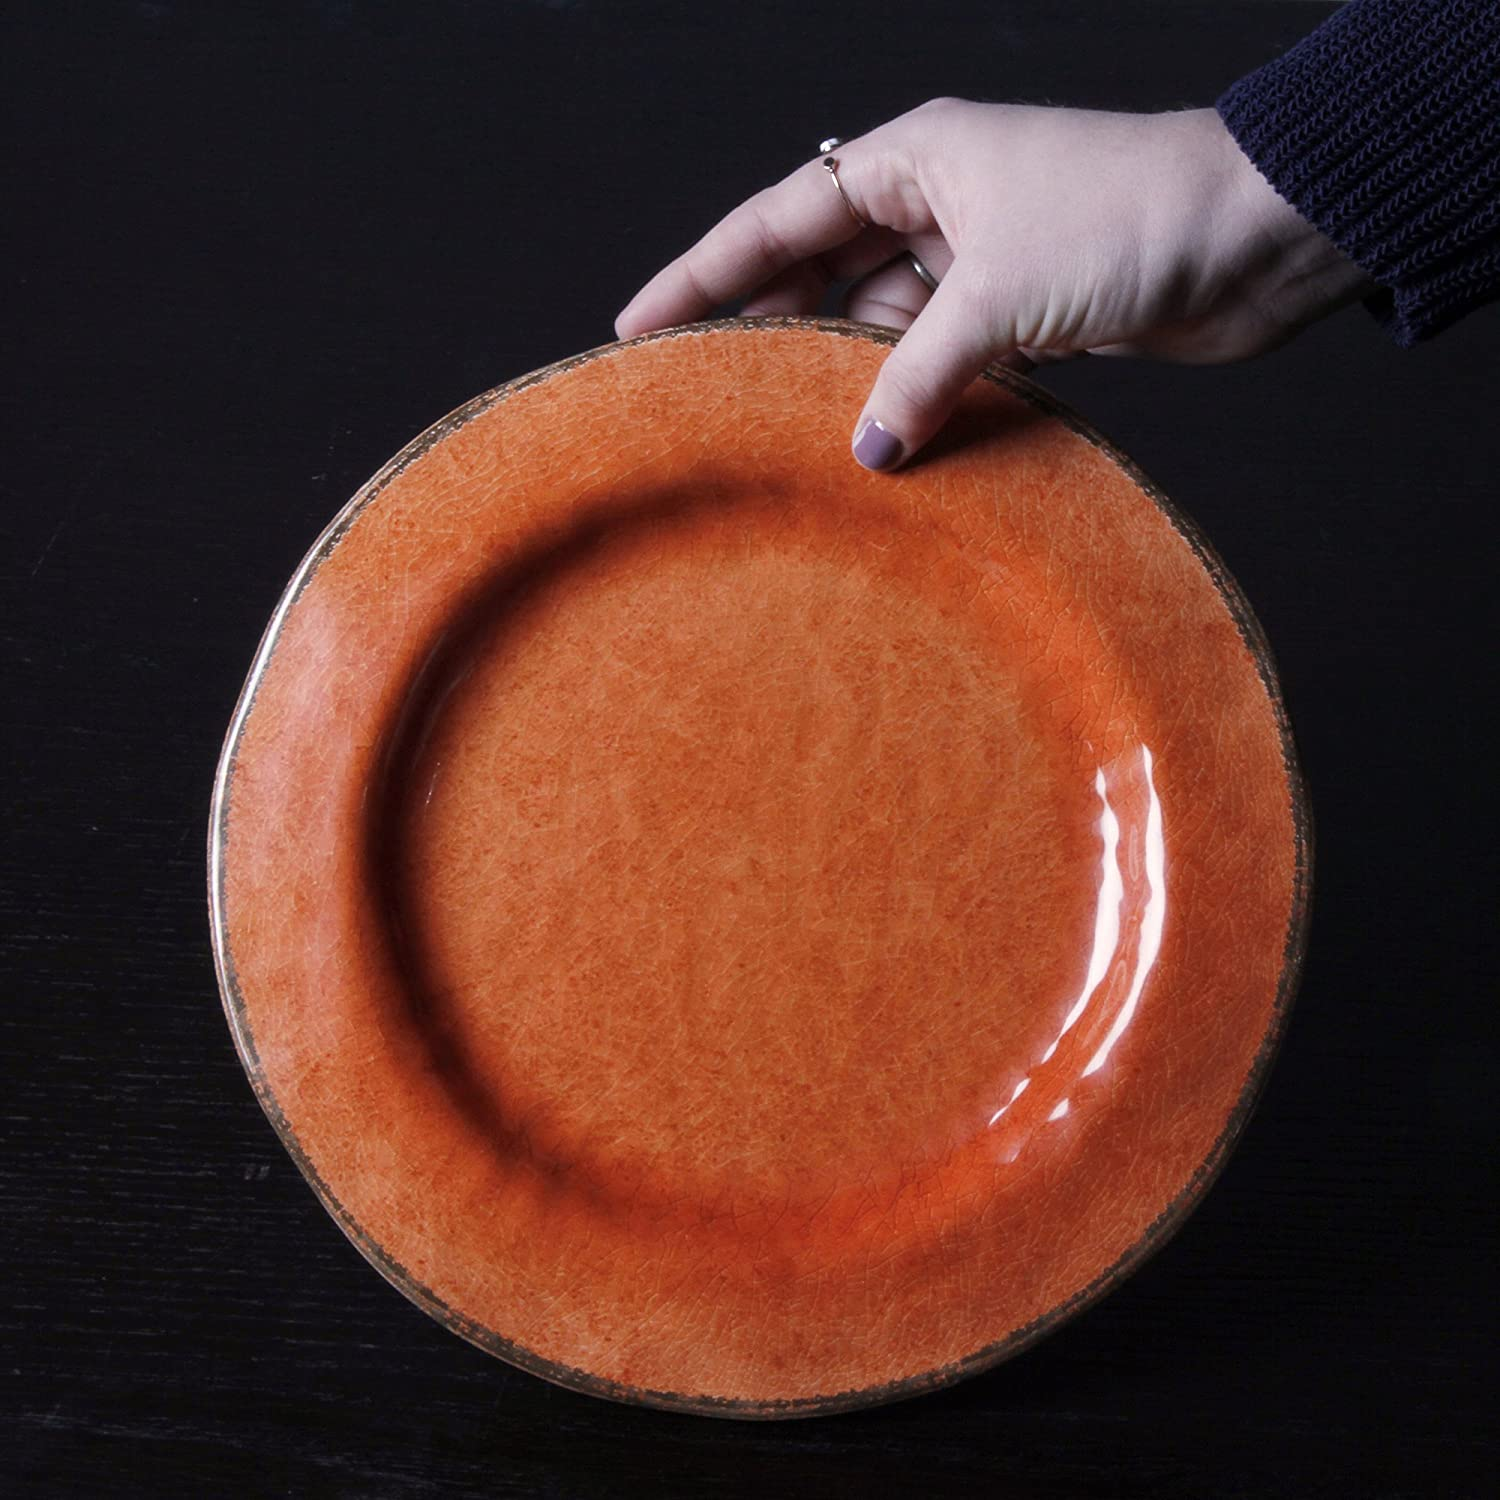 BPA-Free and Great for Outdoor or Casual Meals Set Of 4 tag Veranda Melamine Dinner Plate Coral Durable